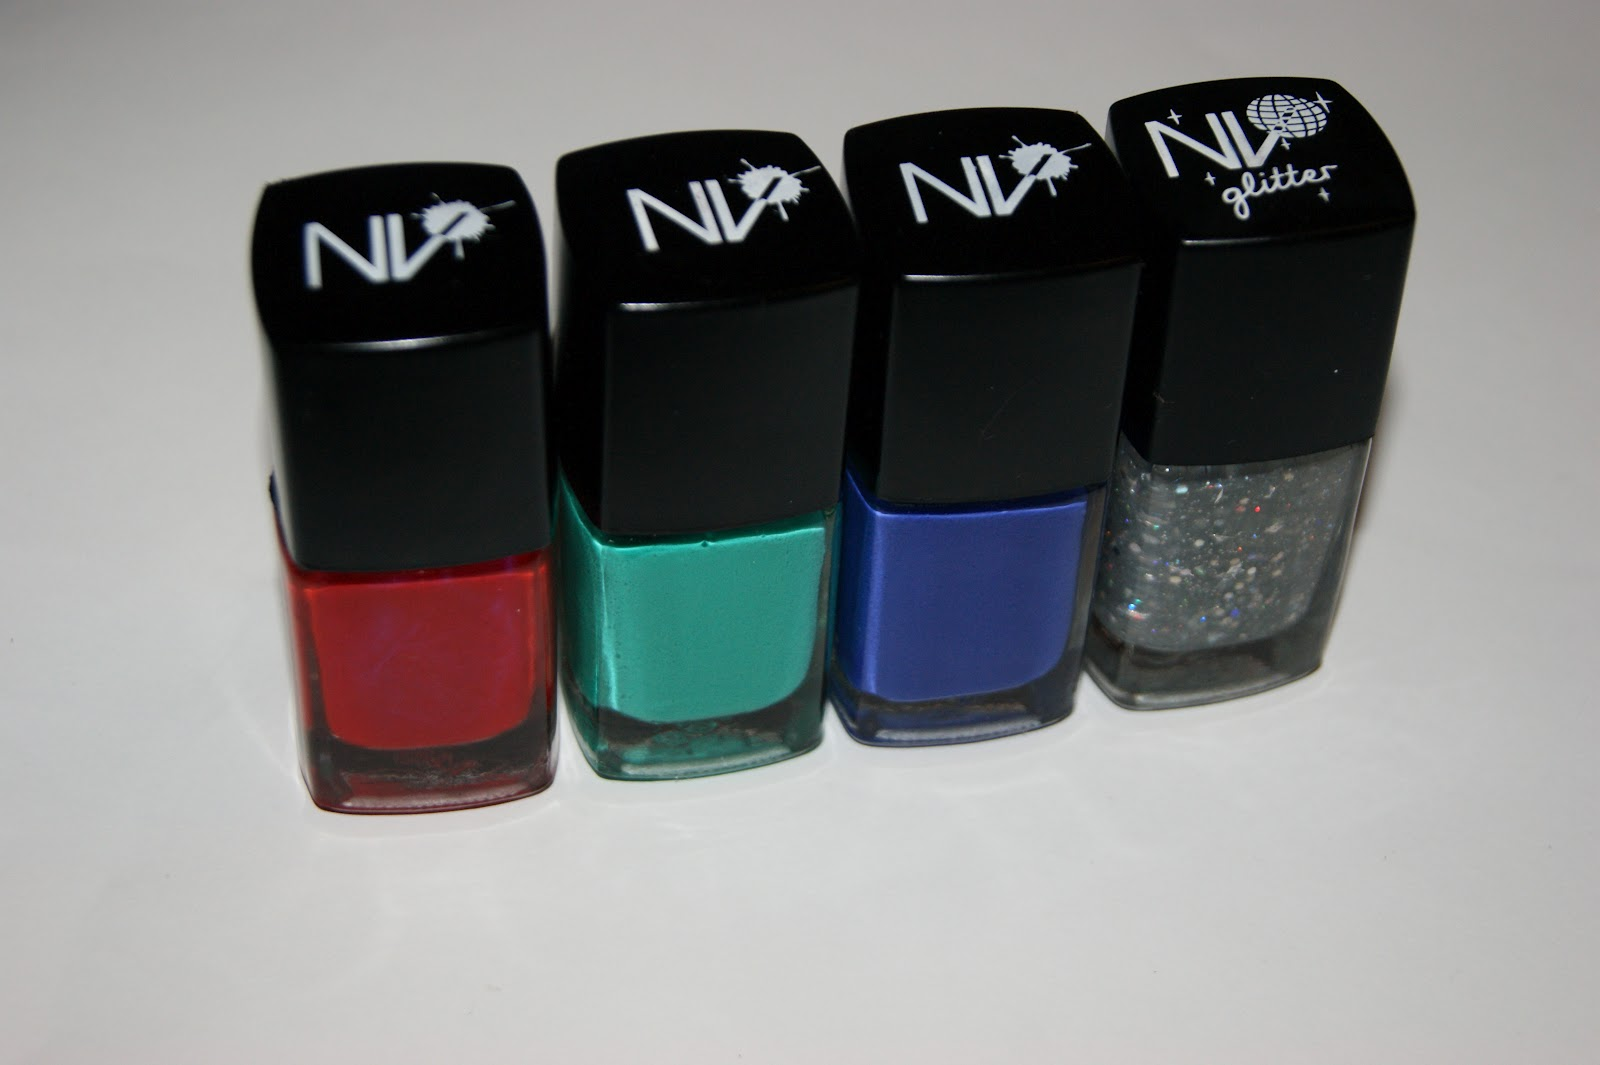 NV Nail Polishes - Review | The Sunday Girl